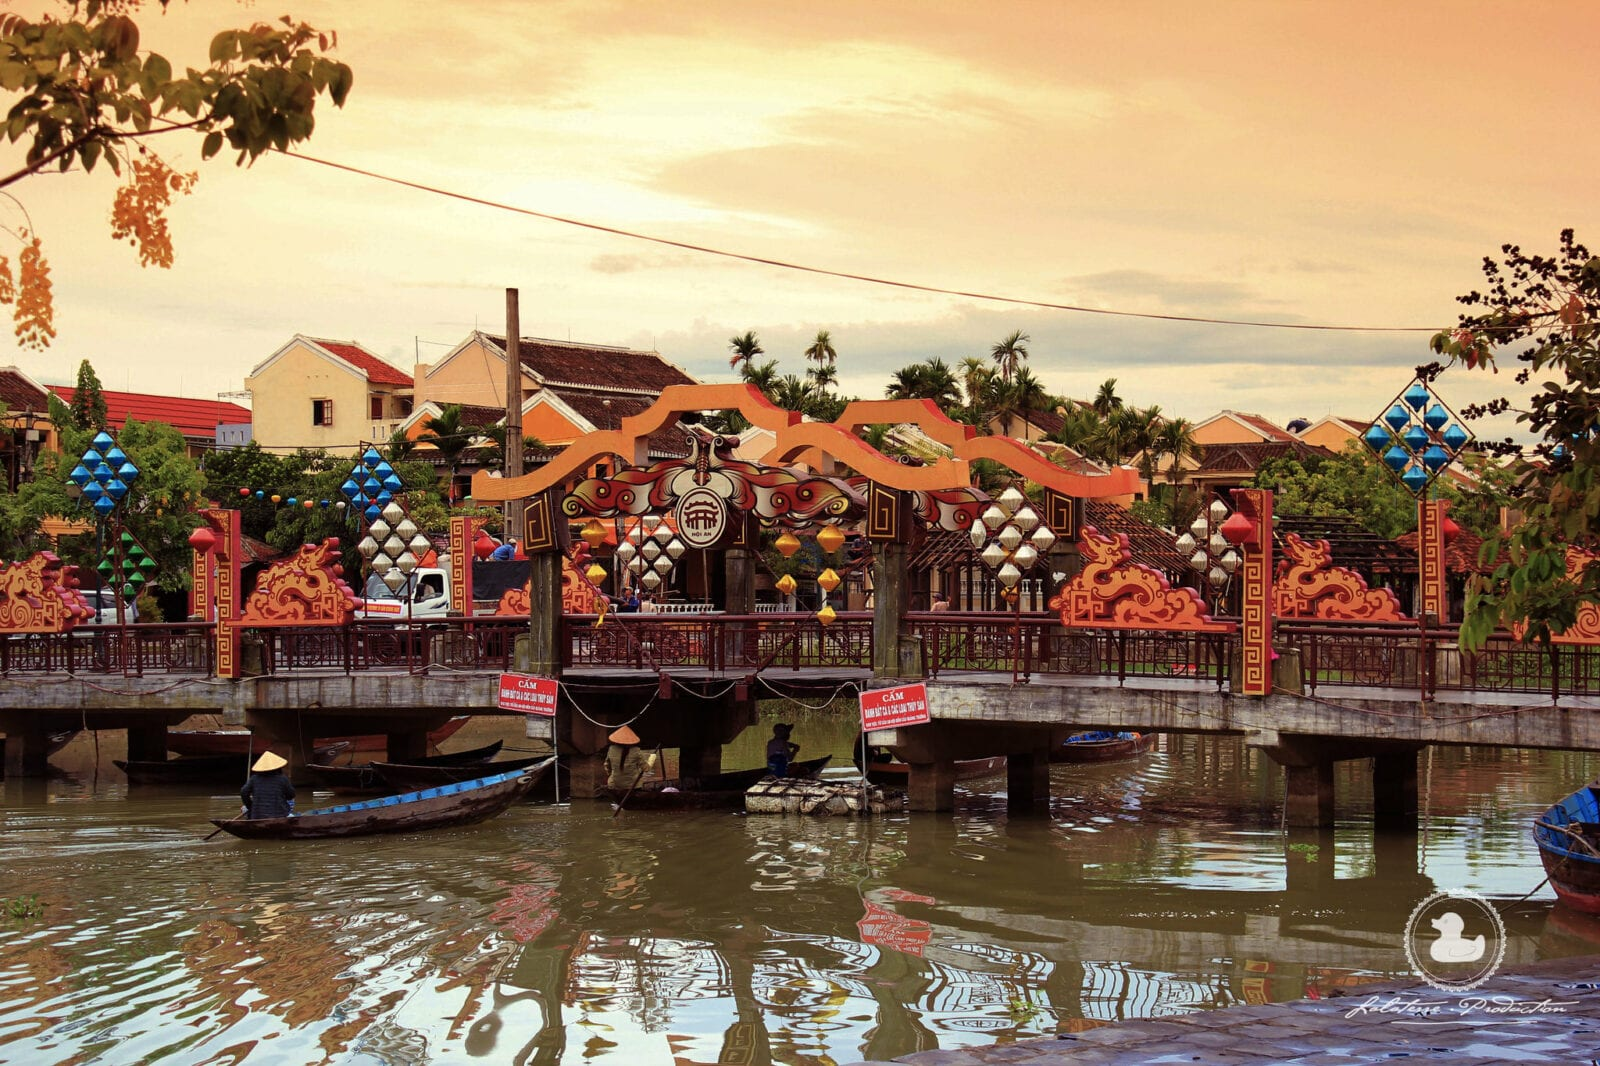 Image of the Bridge of Light's in Hoi An, Vietnam during the day